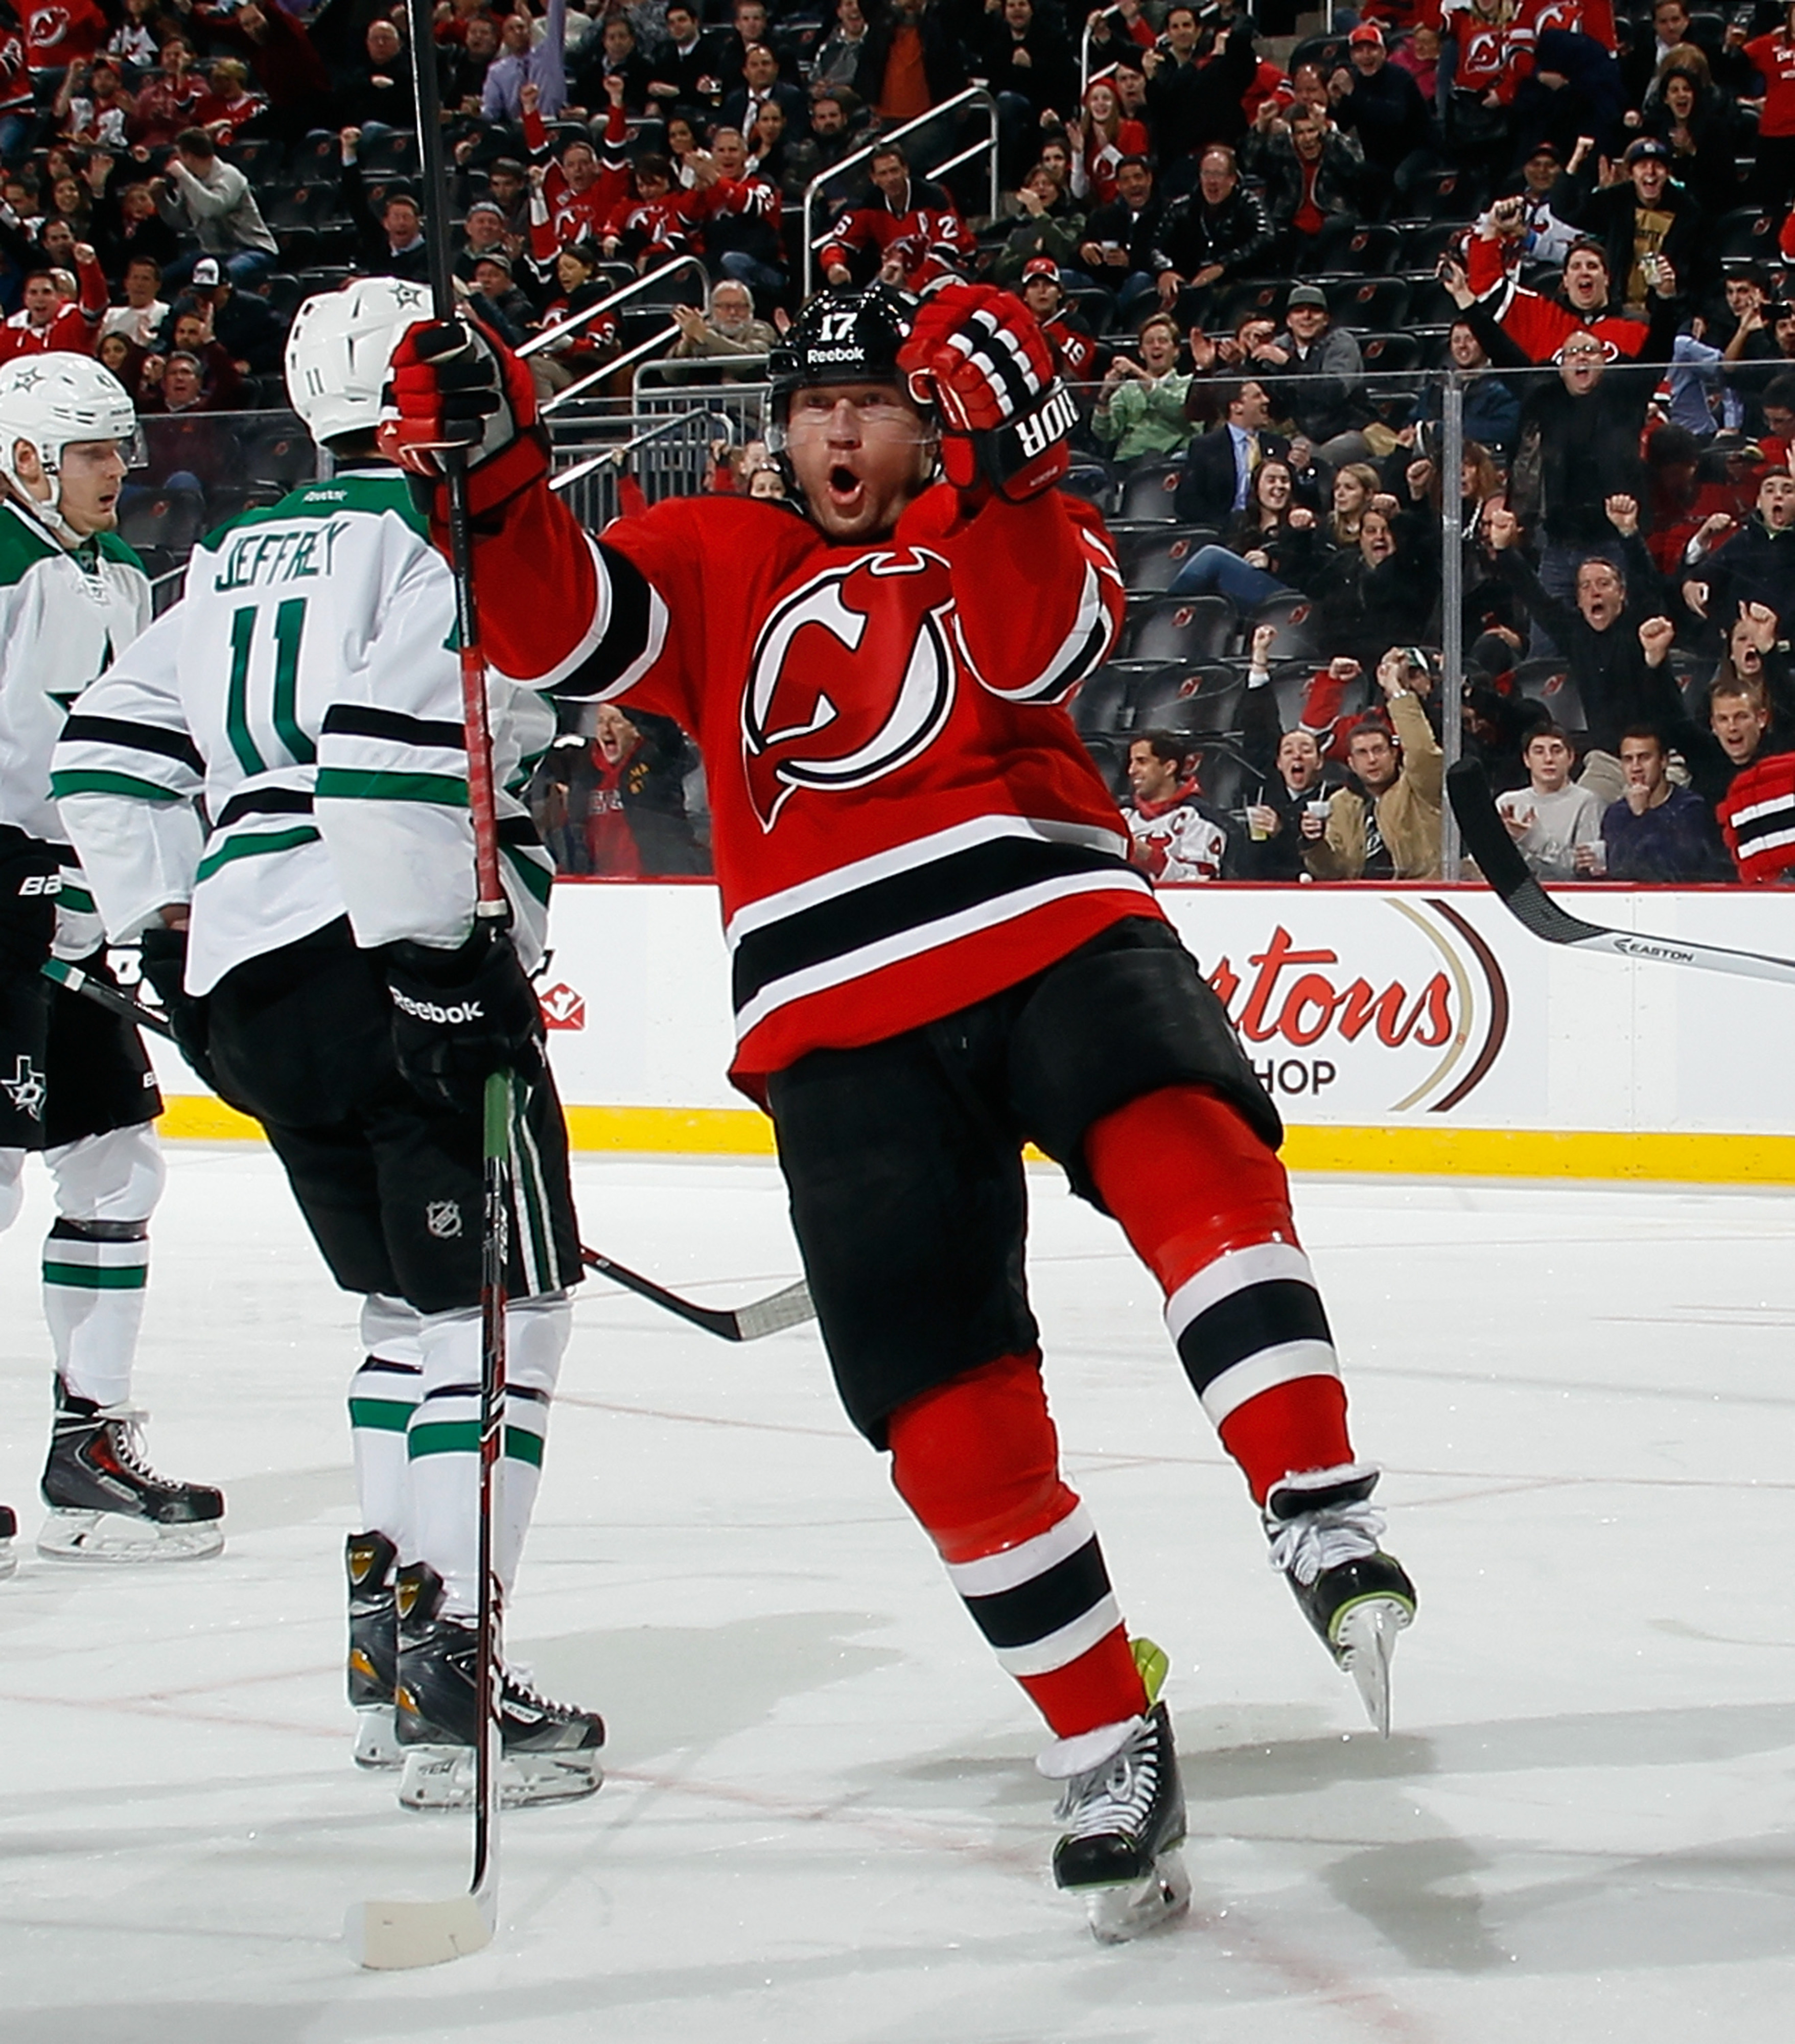 8734a2ac2c3 New Jersey Devils vs. Florida Panthers  Game Preview  46 - All About The  Jersey